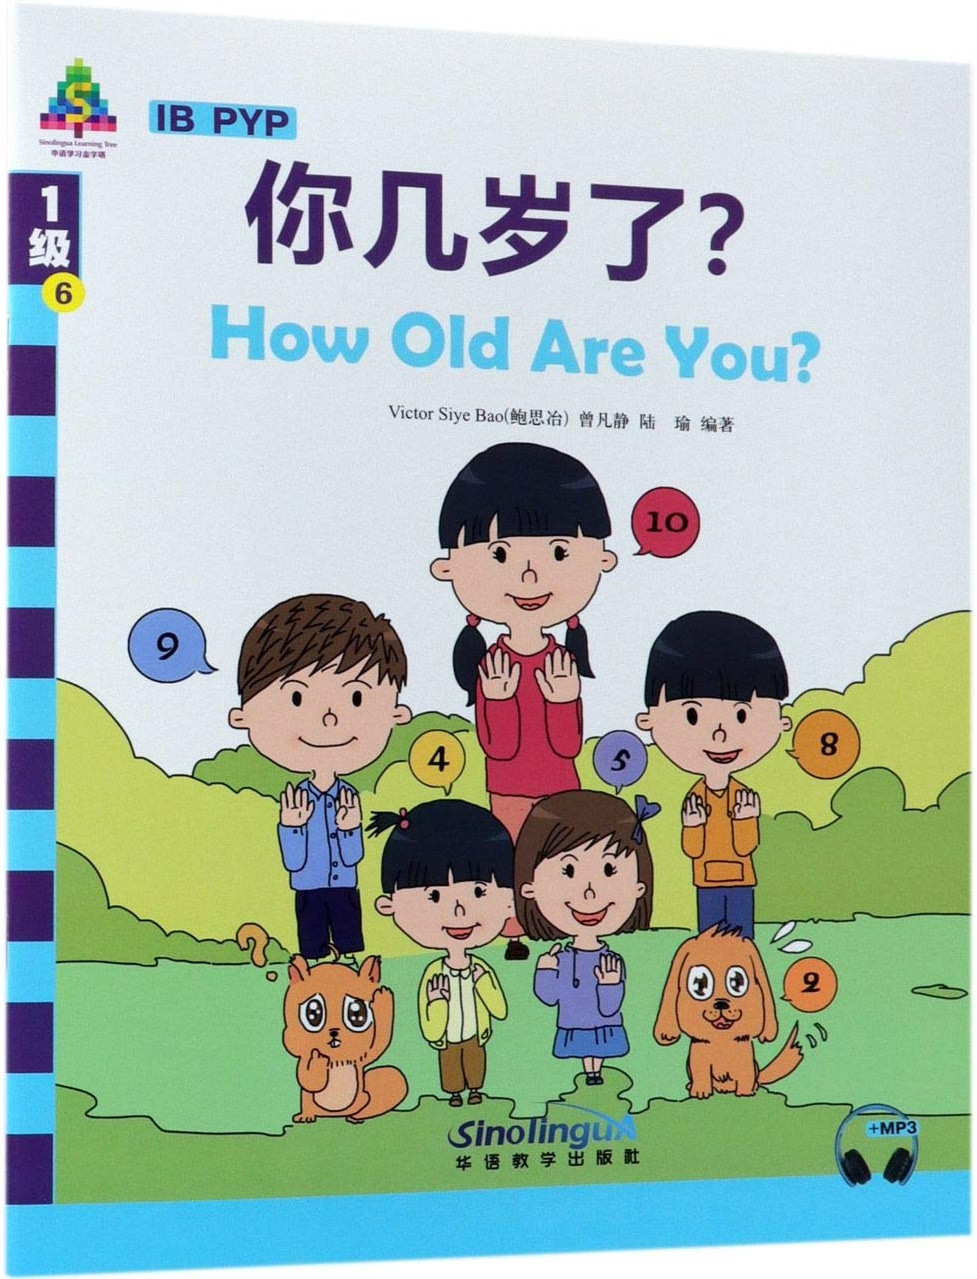 How Old Are You? - Sinolingua Learning Tree for IB PYP (Level 1)